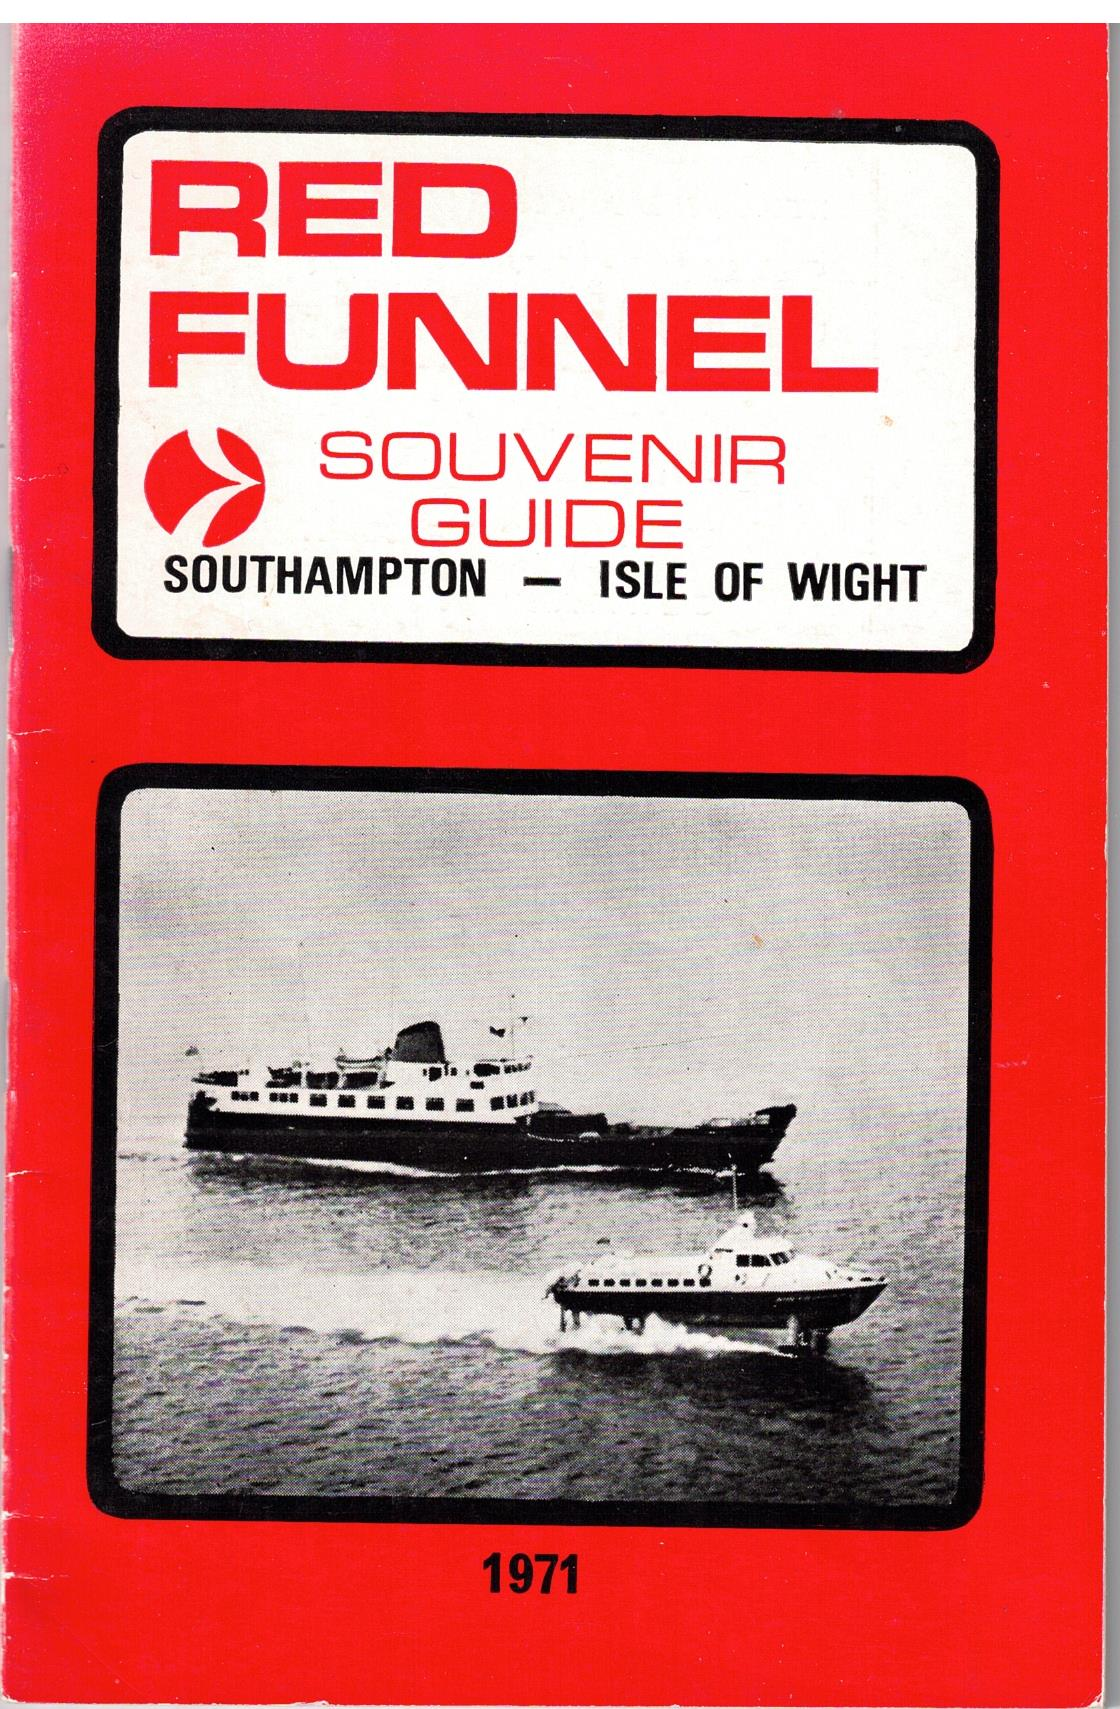 Image for Red Funnel Souvenir Guide - Southampton to Isle of Wight 1971